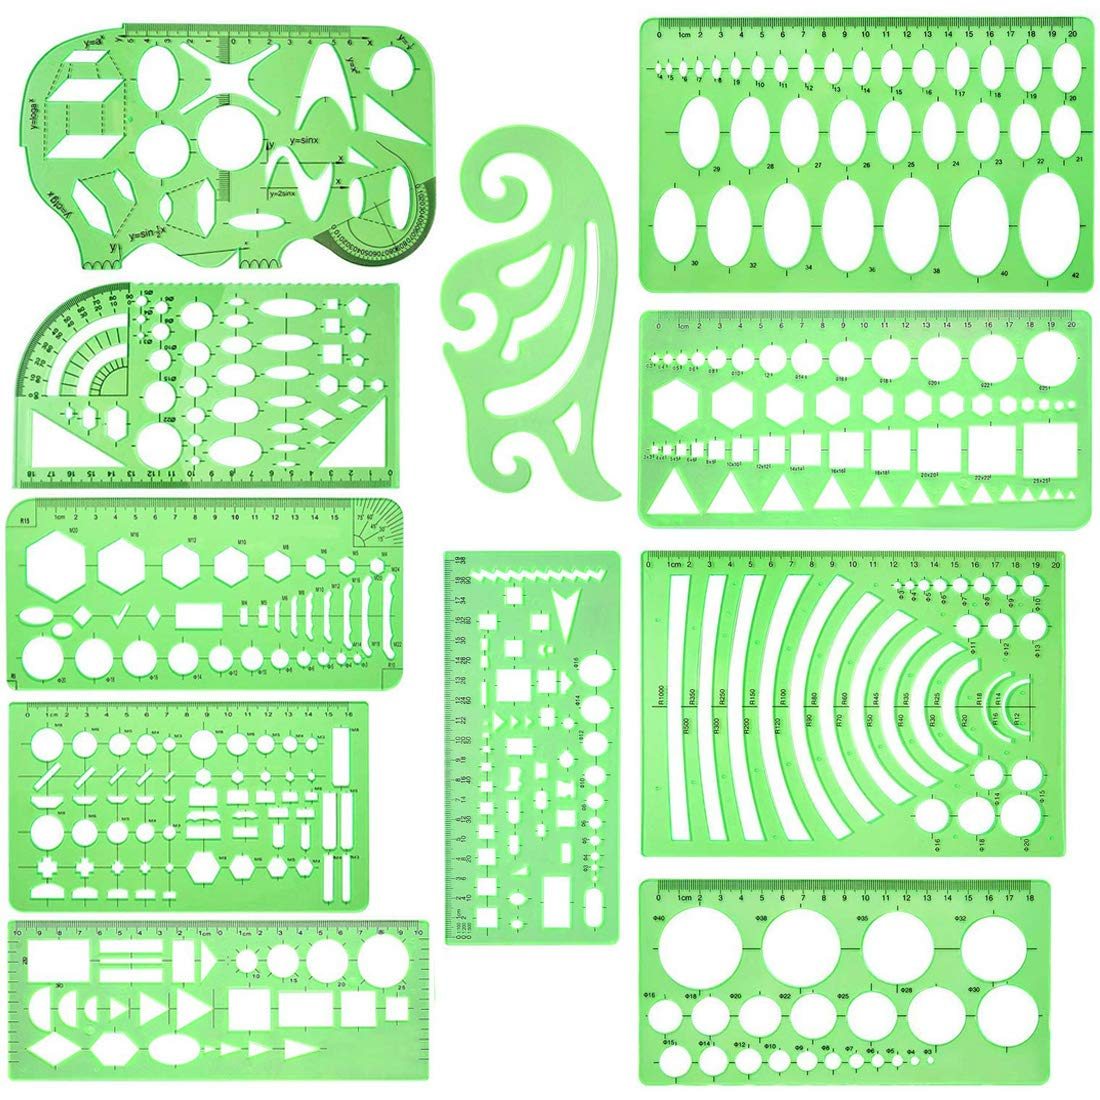 11 Pcs Geometric Drawings Templates Measuring Rulers Plastic Measuring Templates Plastic Geometry Stencils with 1 Pack Poly Zipper Envelopes for Office and School, Building Formwork, Drawings Drafting by Mayboos